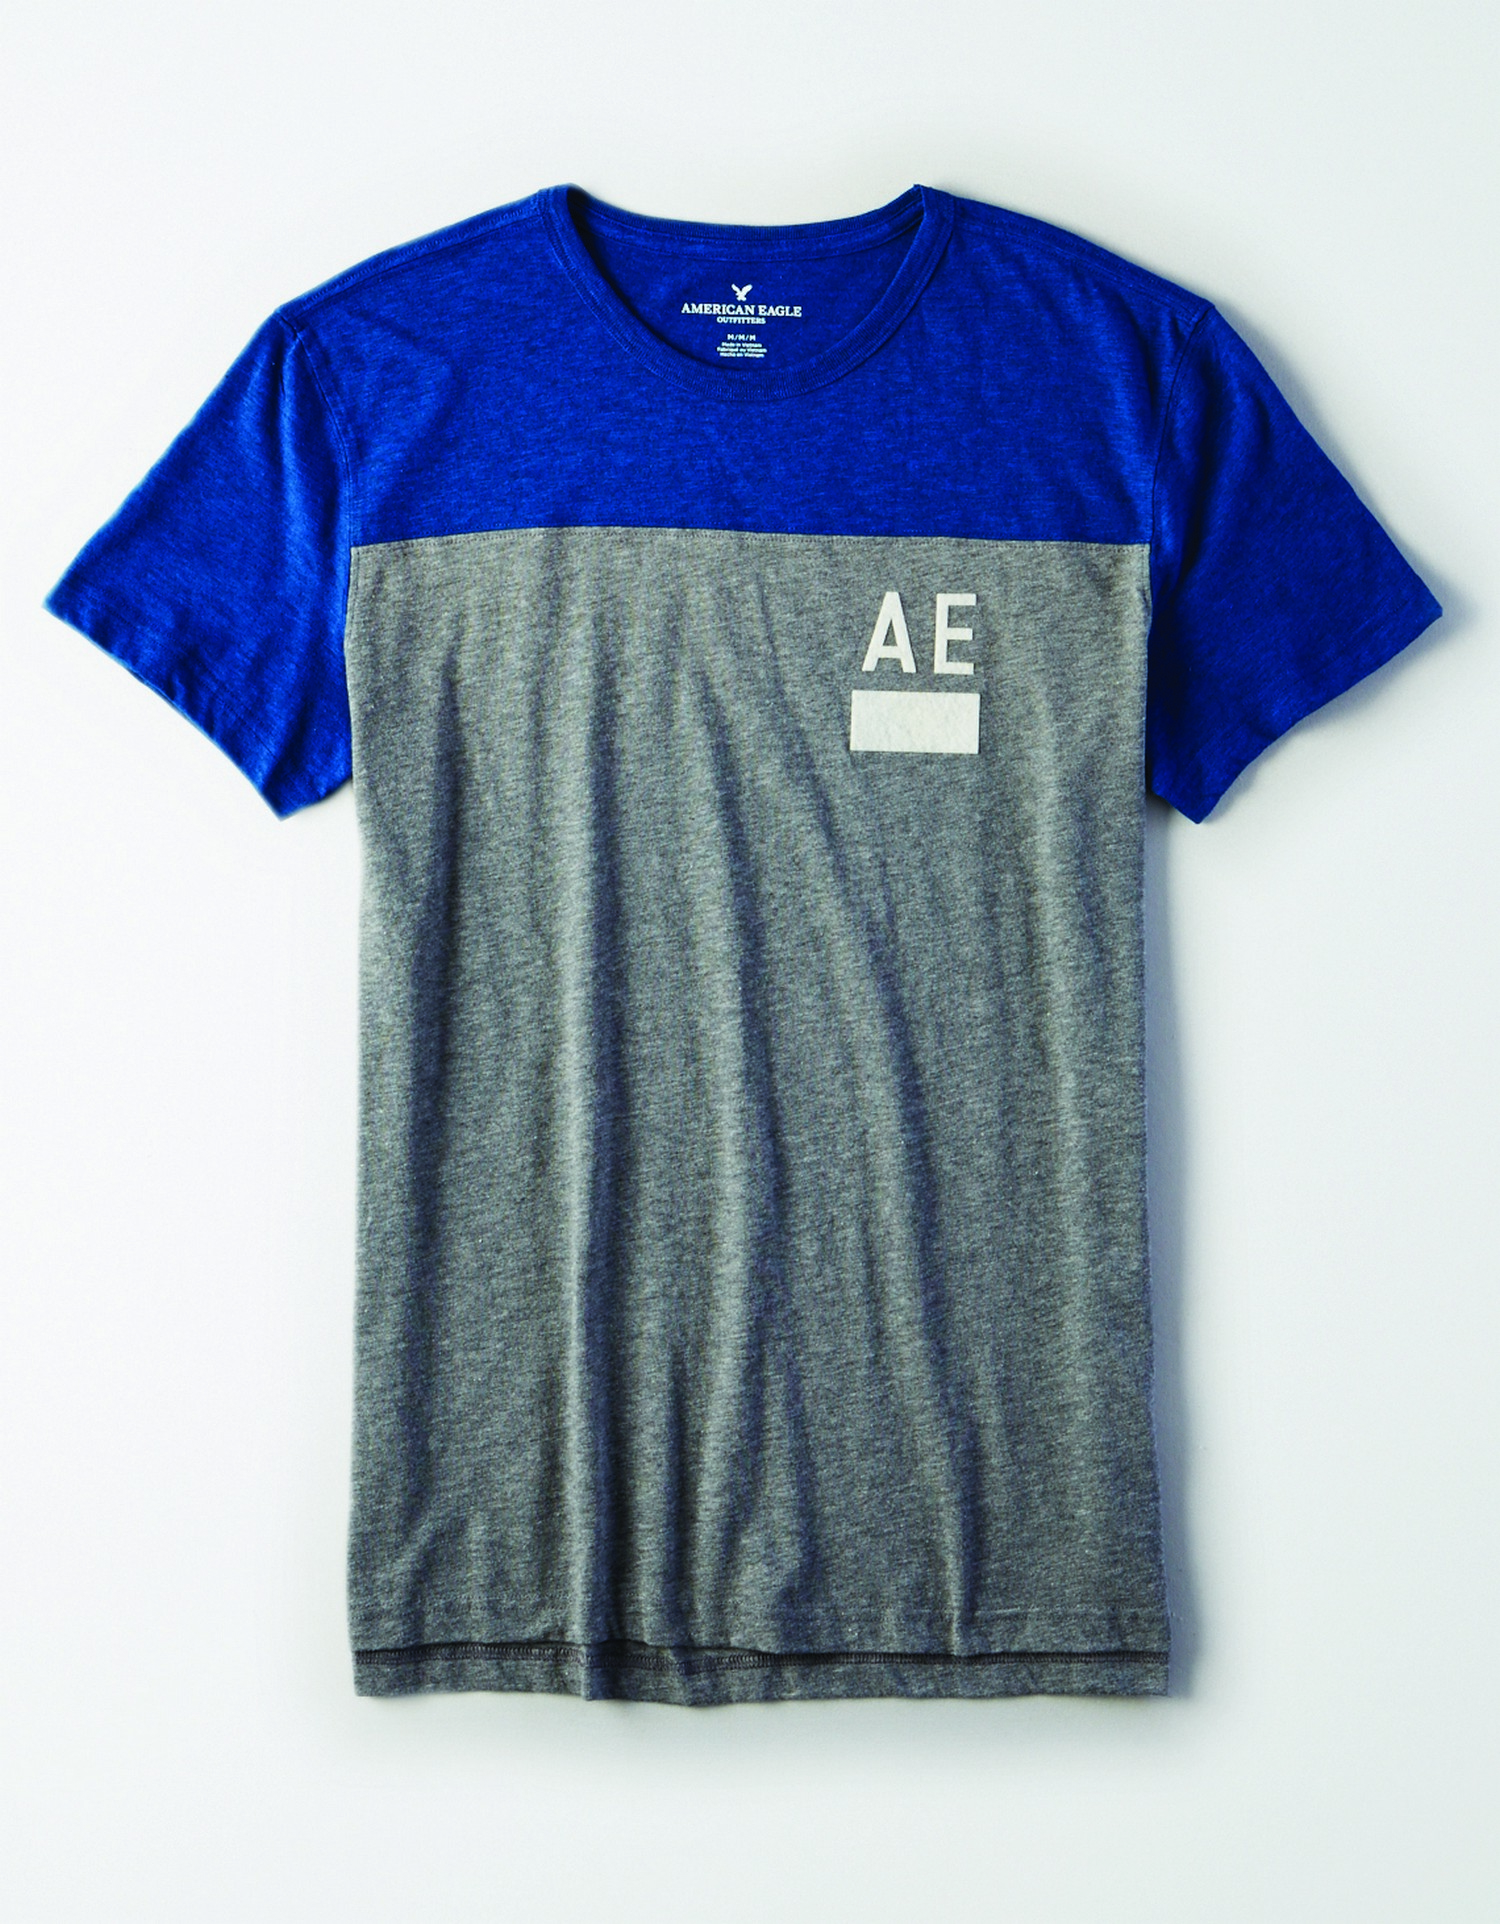 Ae INTL- M- Apparel-Graphic Tee- blue top and grey body s/s tee with white felt AE and block graphic on the left chest BG